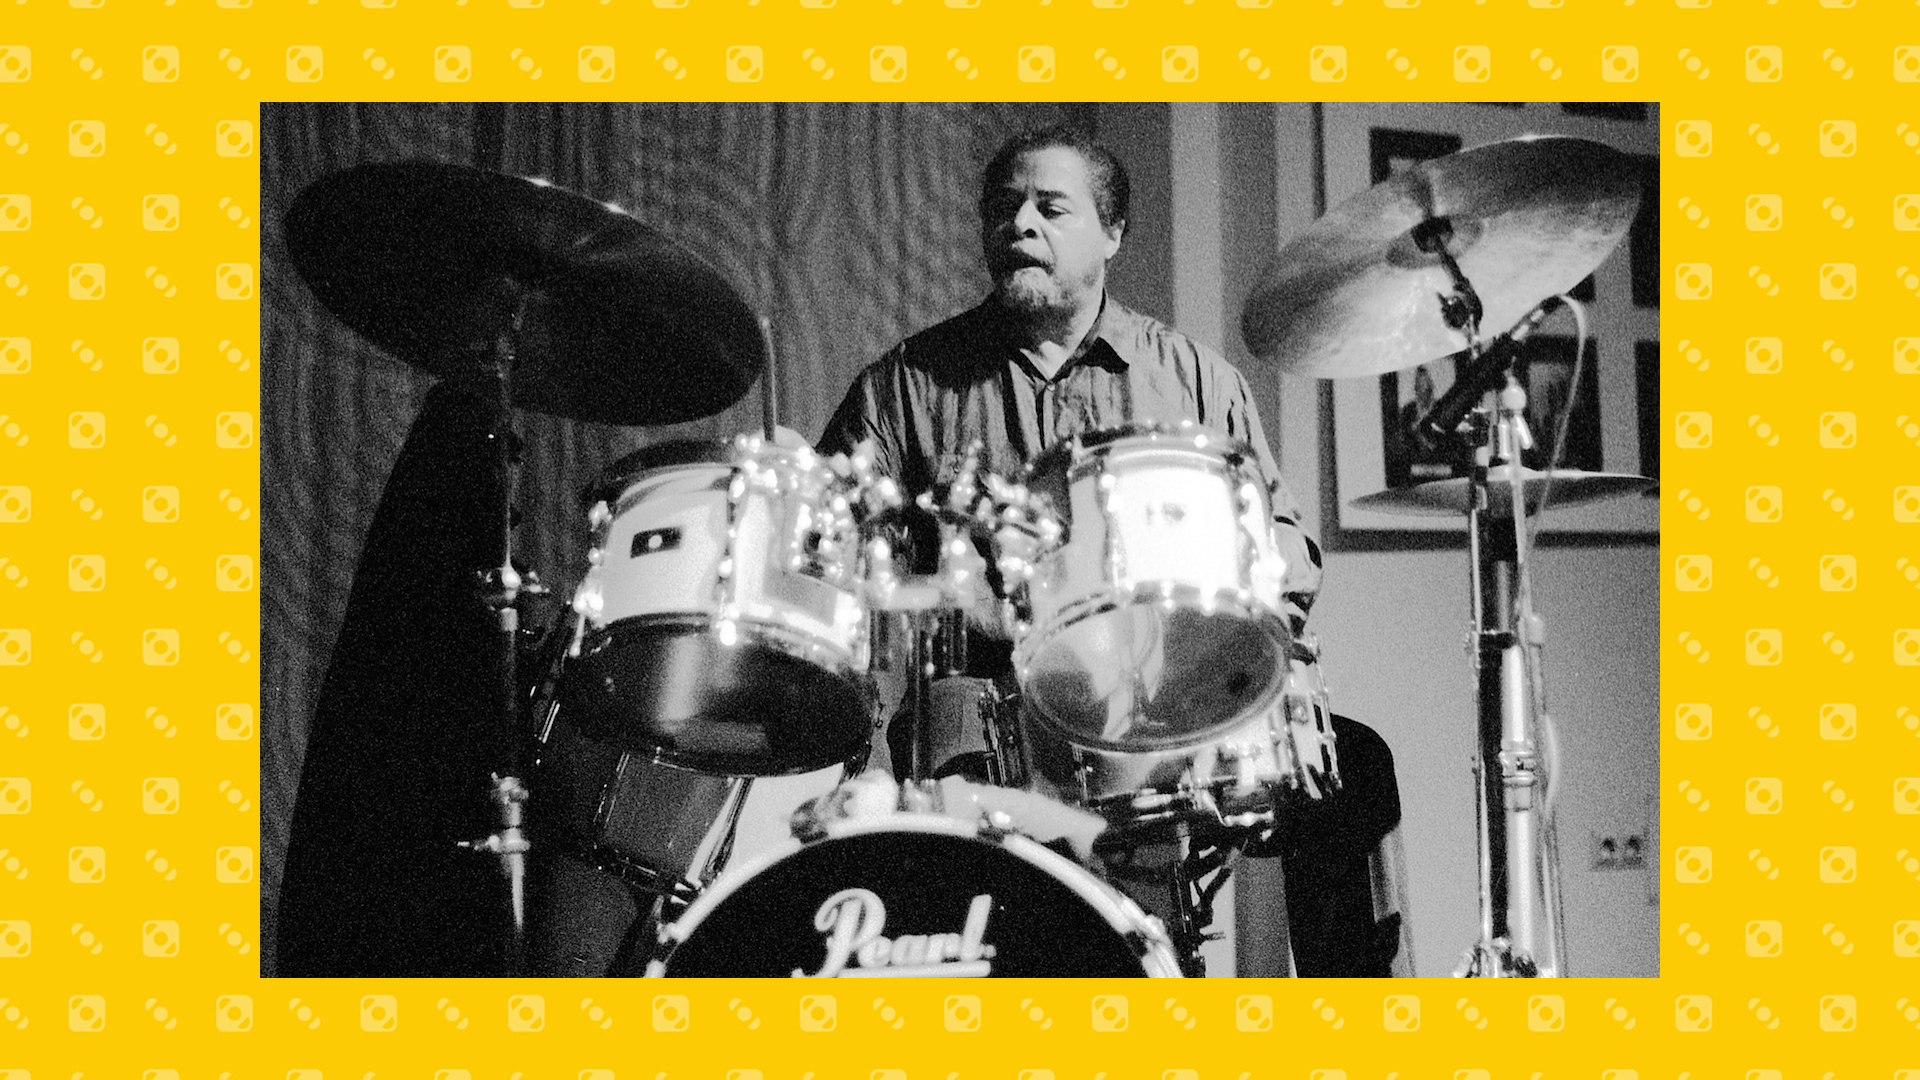 Addio al grande batterista jazz Jimmy Cobb